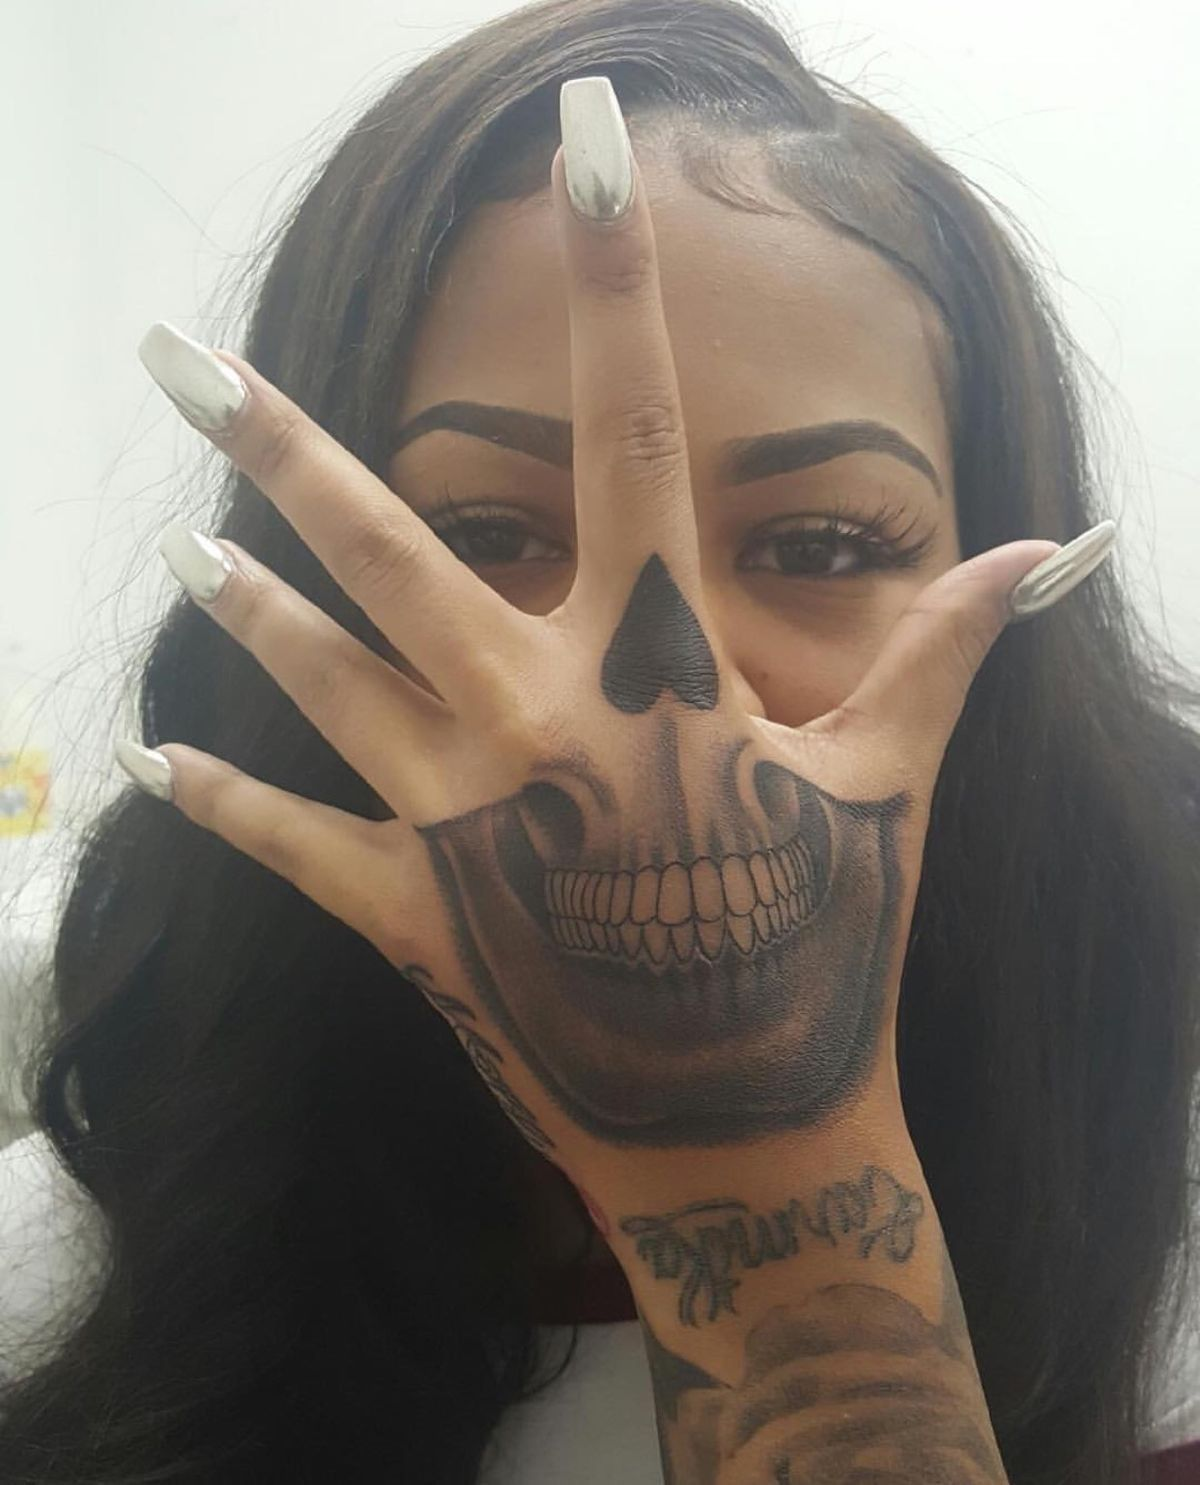 Pin by Ruby Riley on Tats Hand tattoos, Tattoos, Molly brazy